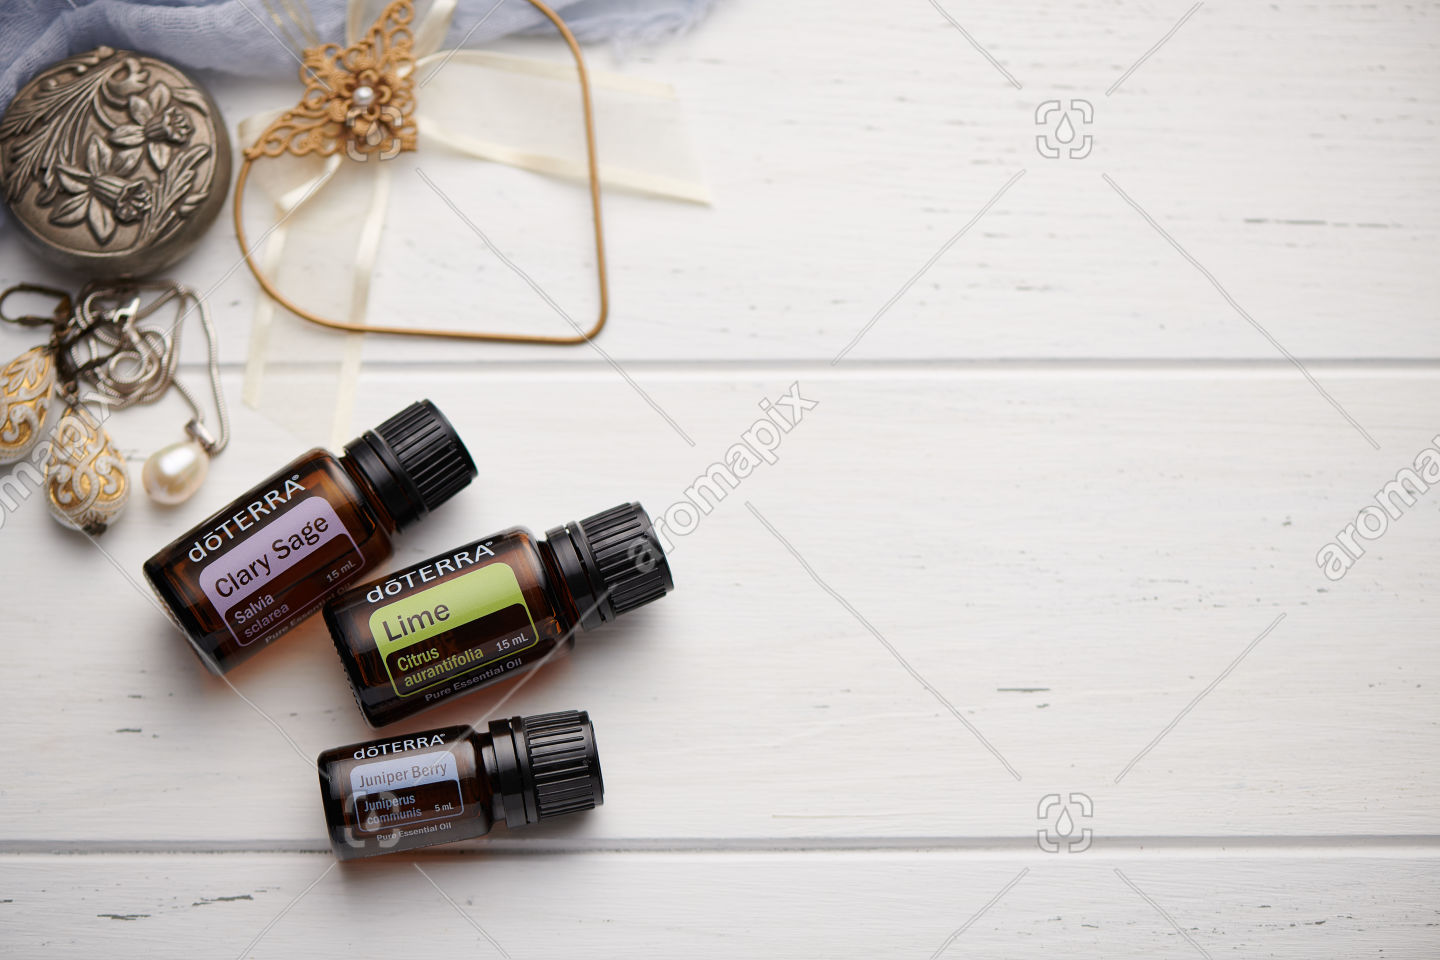 doTERRA Clary Sage, Lime and Juniper Berry on white vintage wooden background